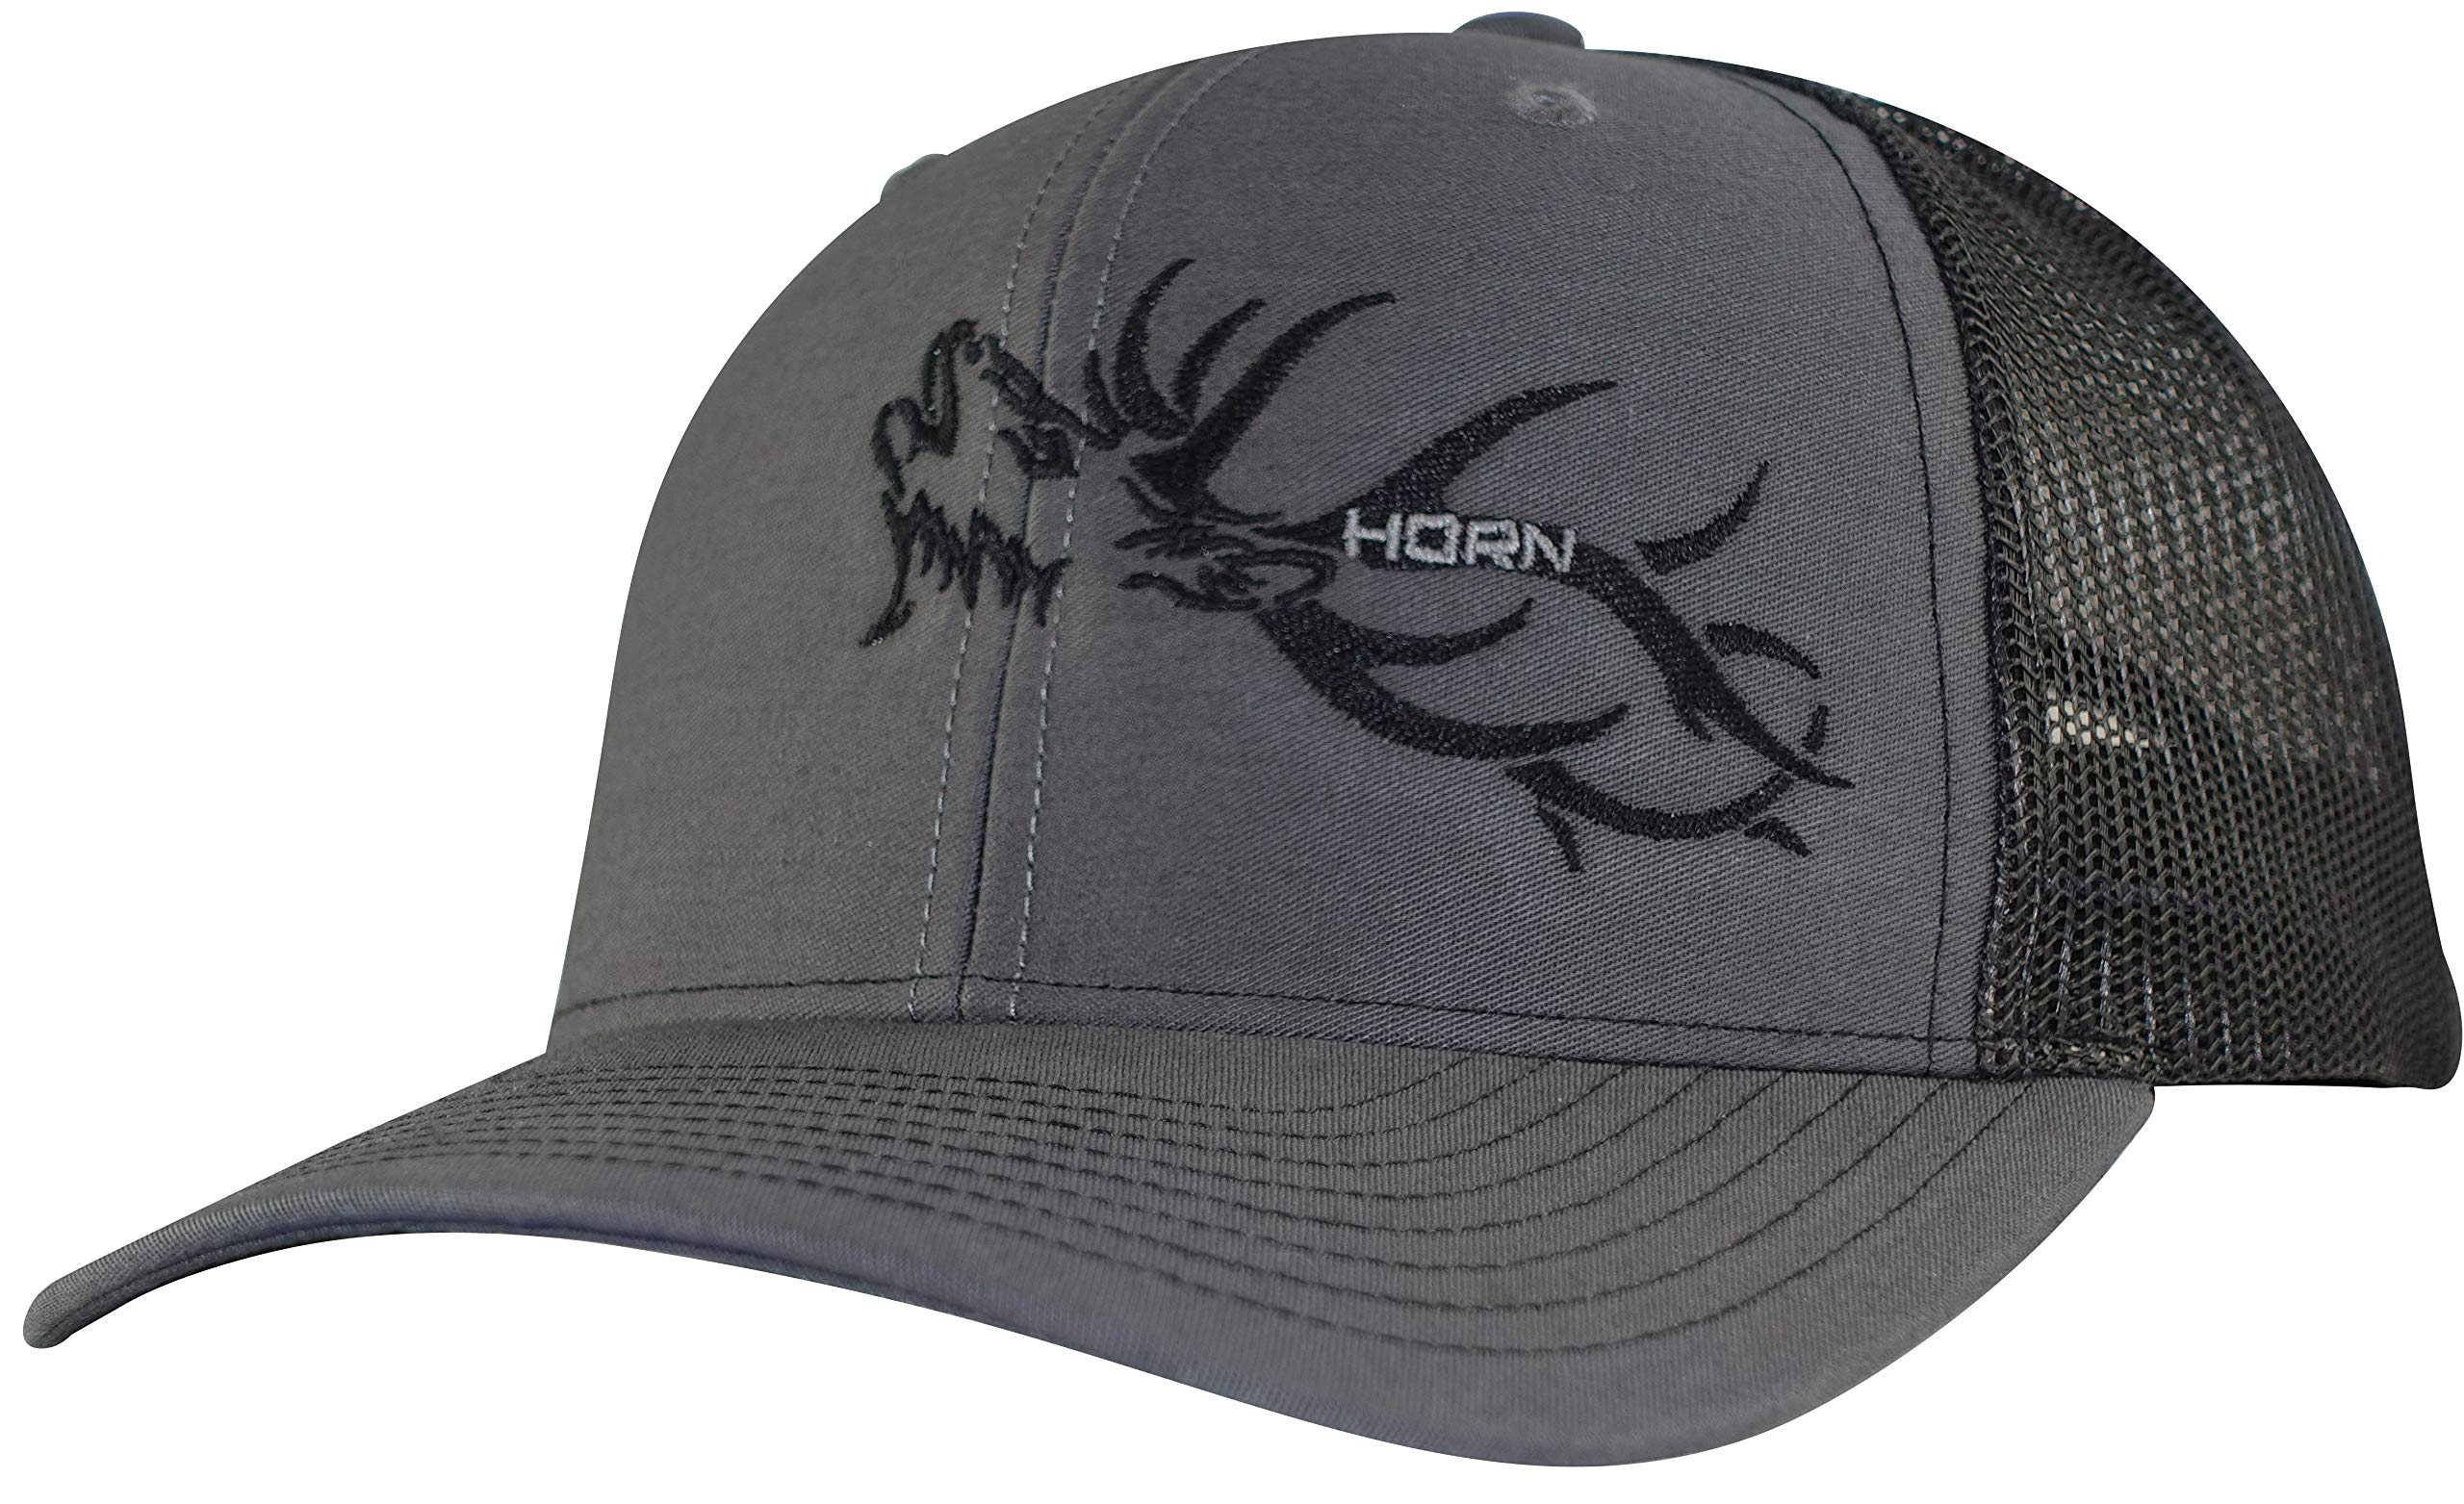 bb7d4277796267 Horn Gear Trucker Hat - Hunters Series Caps - Elk Edition Hats - High  Air-Flow Cooling Mesh Design (Charcoal/Black)